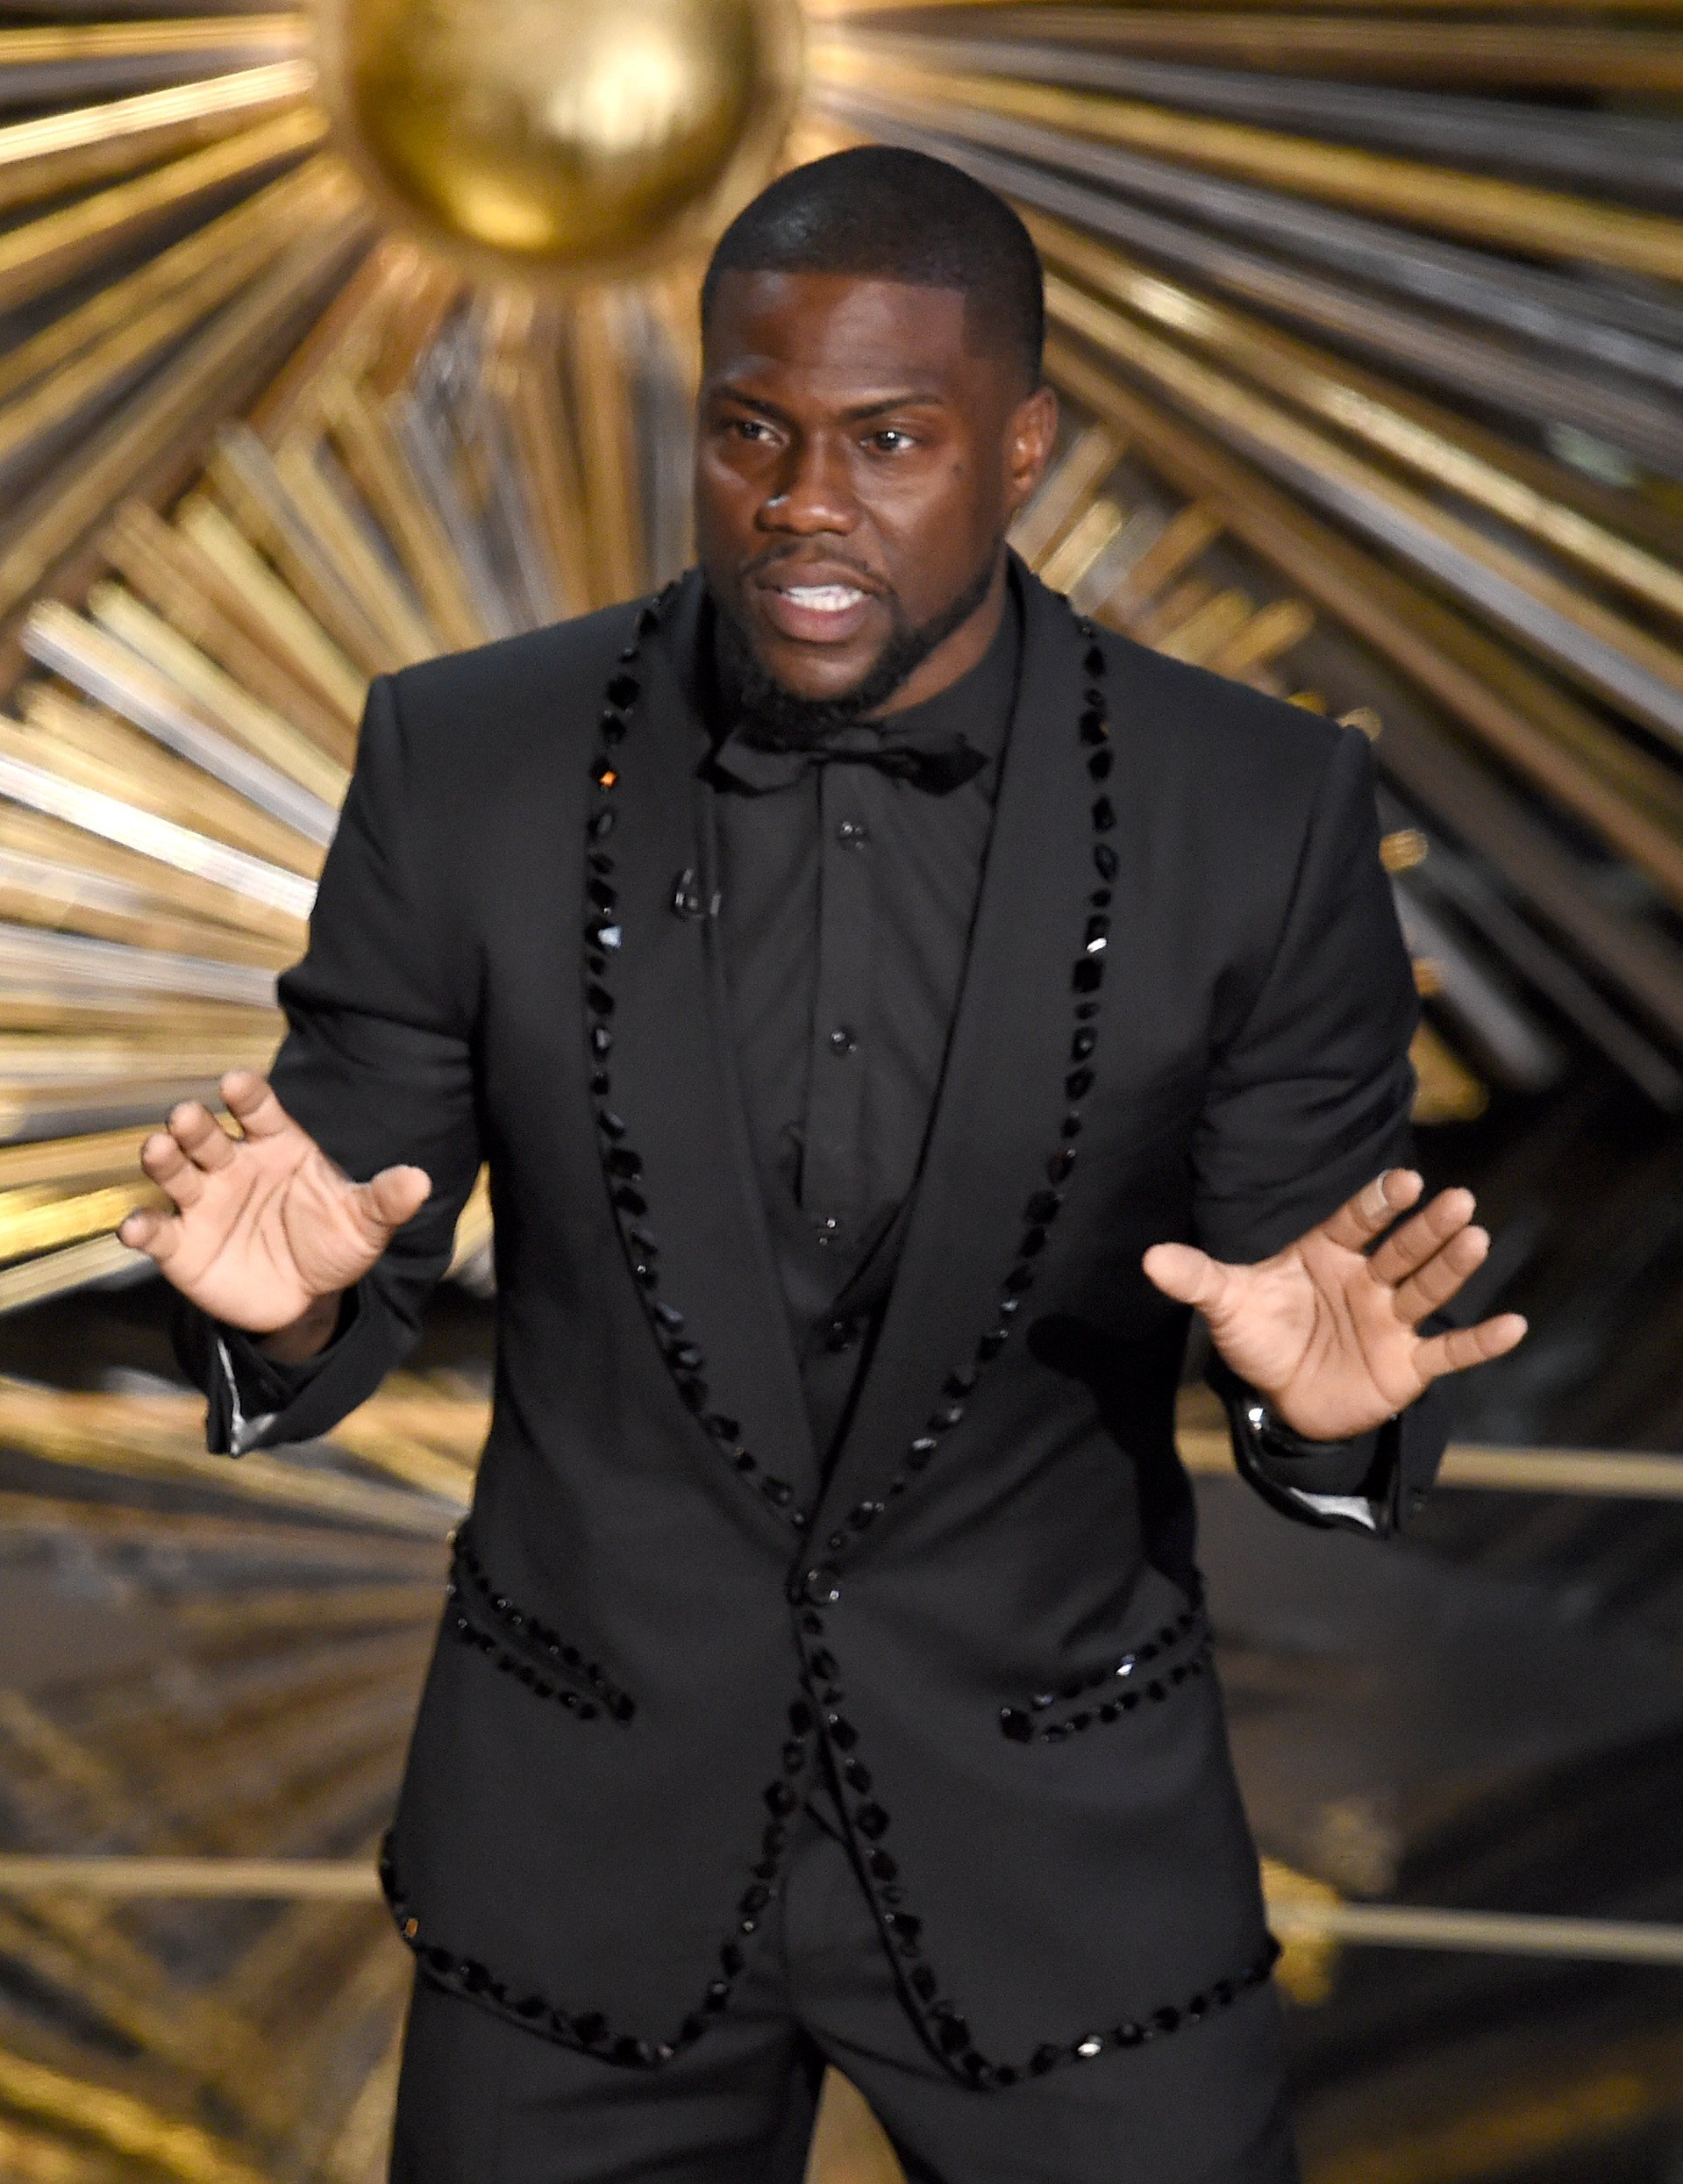 Kevin Hart at the 88th Annual Academy Awards on Feb. 28, 2016 in California | Photo: Getty Images